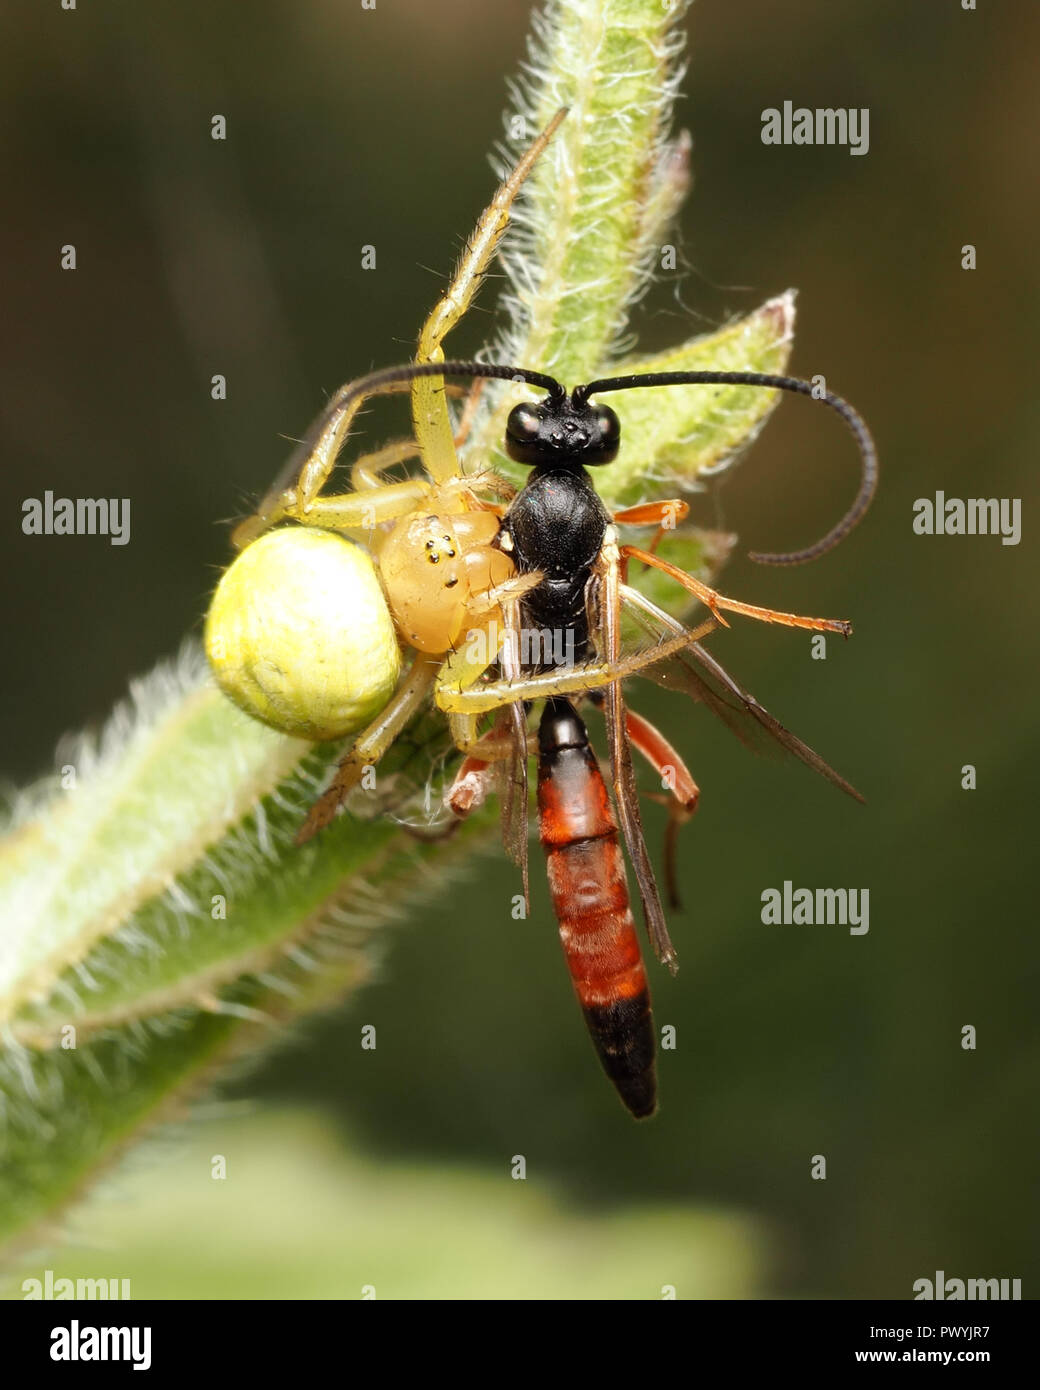 Parasitoid wasp caught by cucumber green spider. Tipperary, Ireland - Stock Image